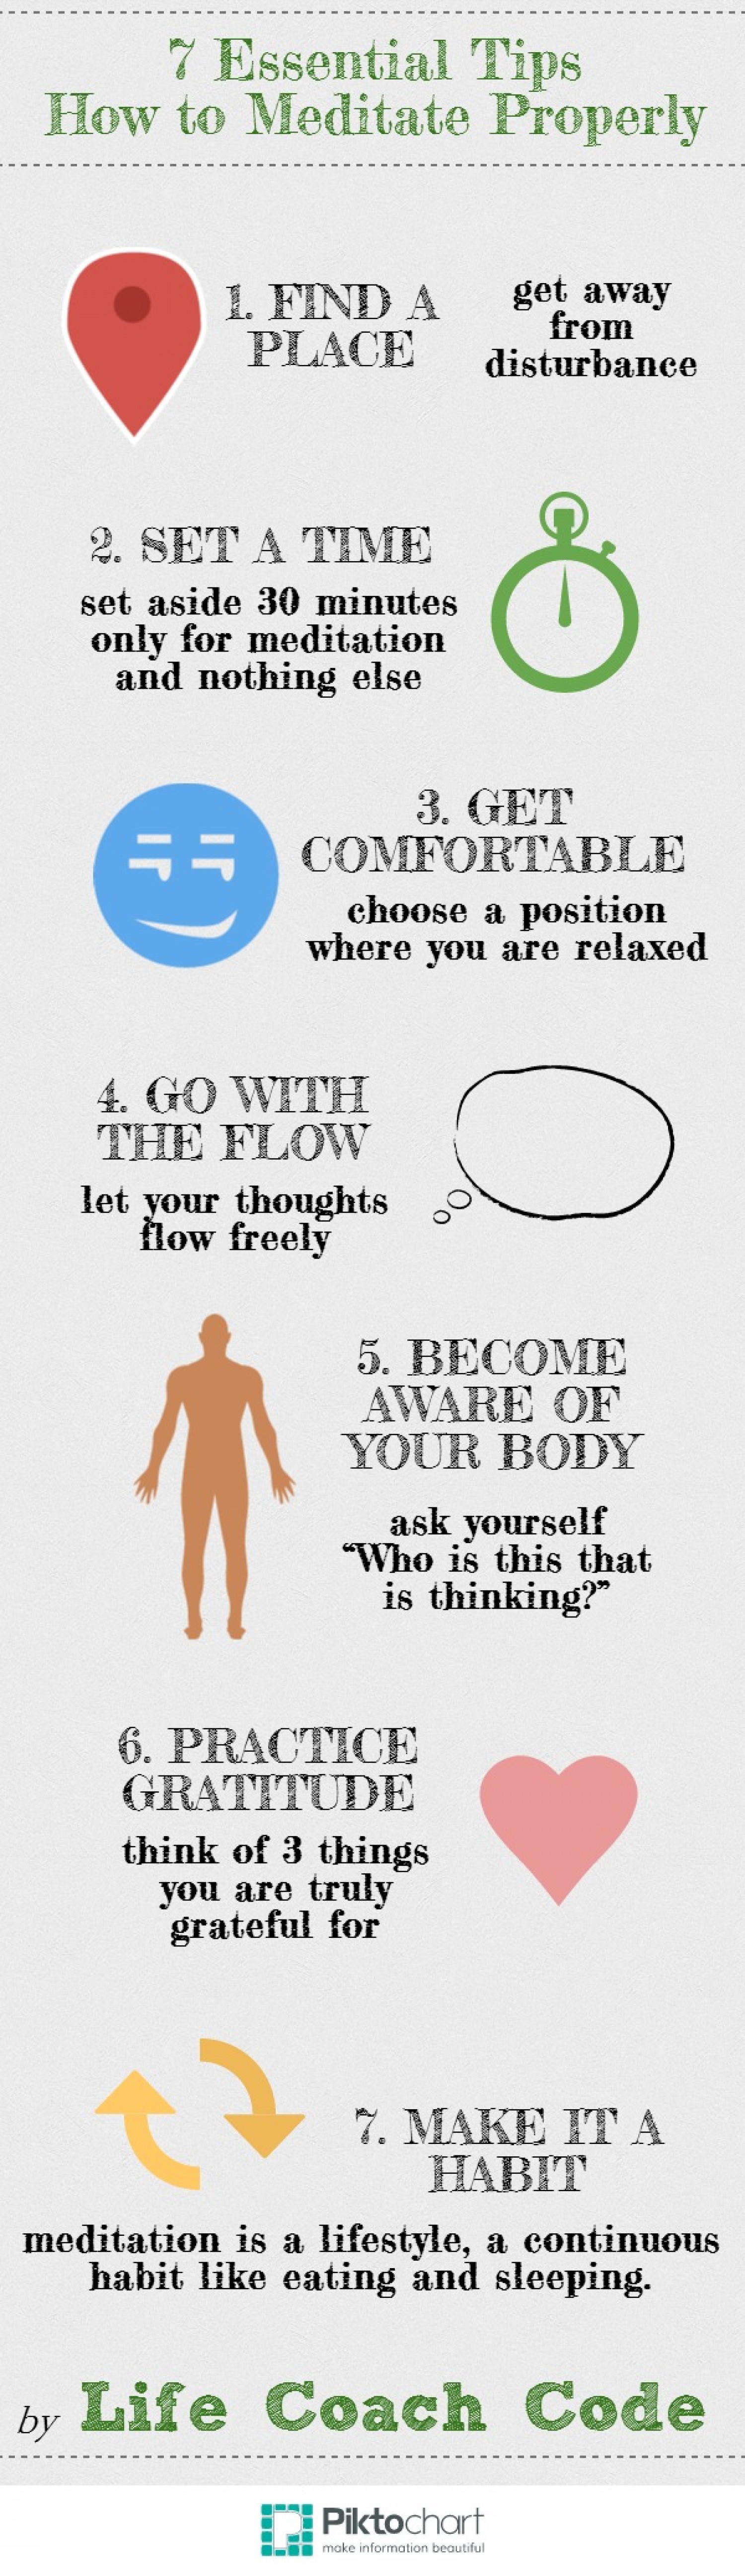 7 Essential Tips How to Meditate Properly Infographic